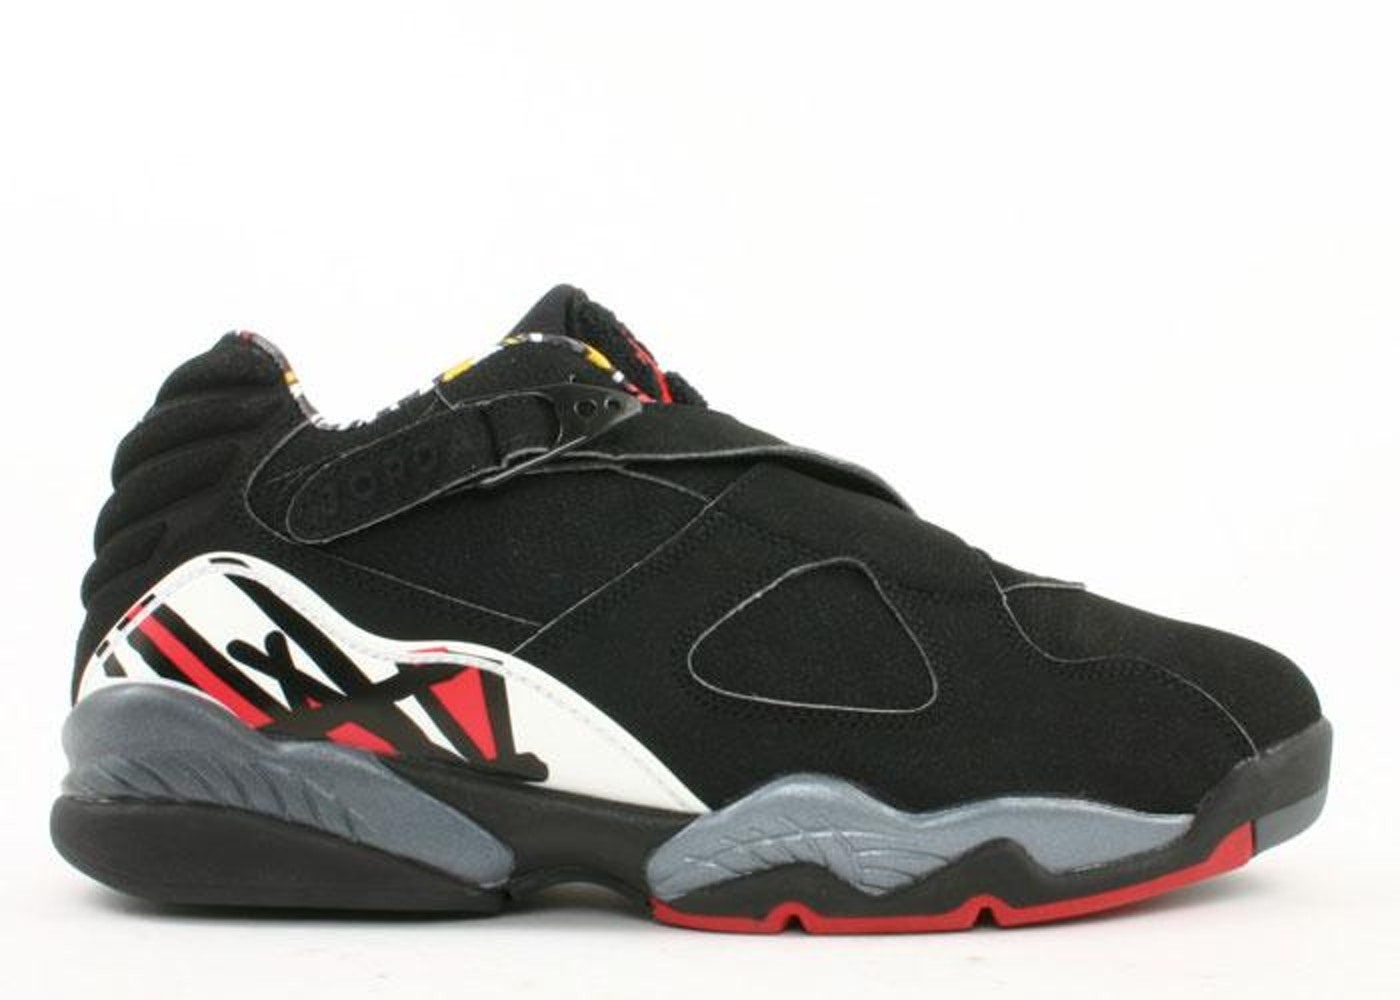 Buy Air Jordan 8 Size 15 Shoes   Deadstock Sneakers e49af7fce